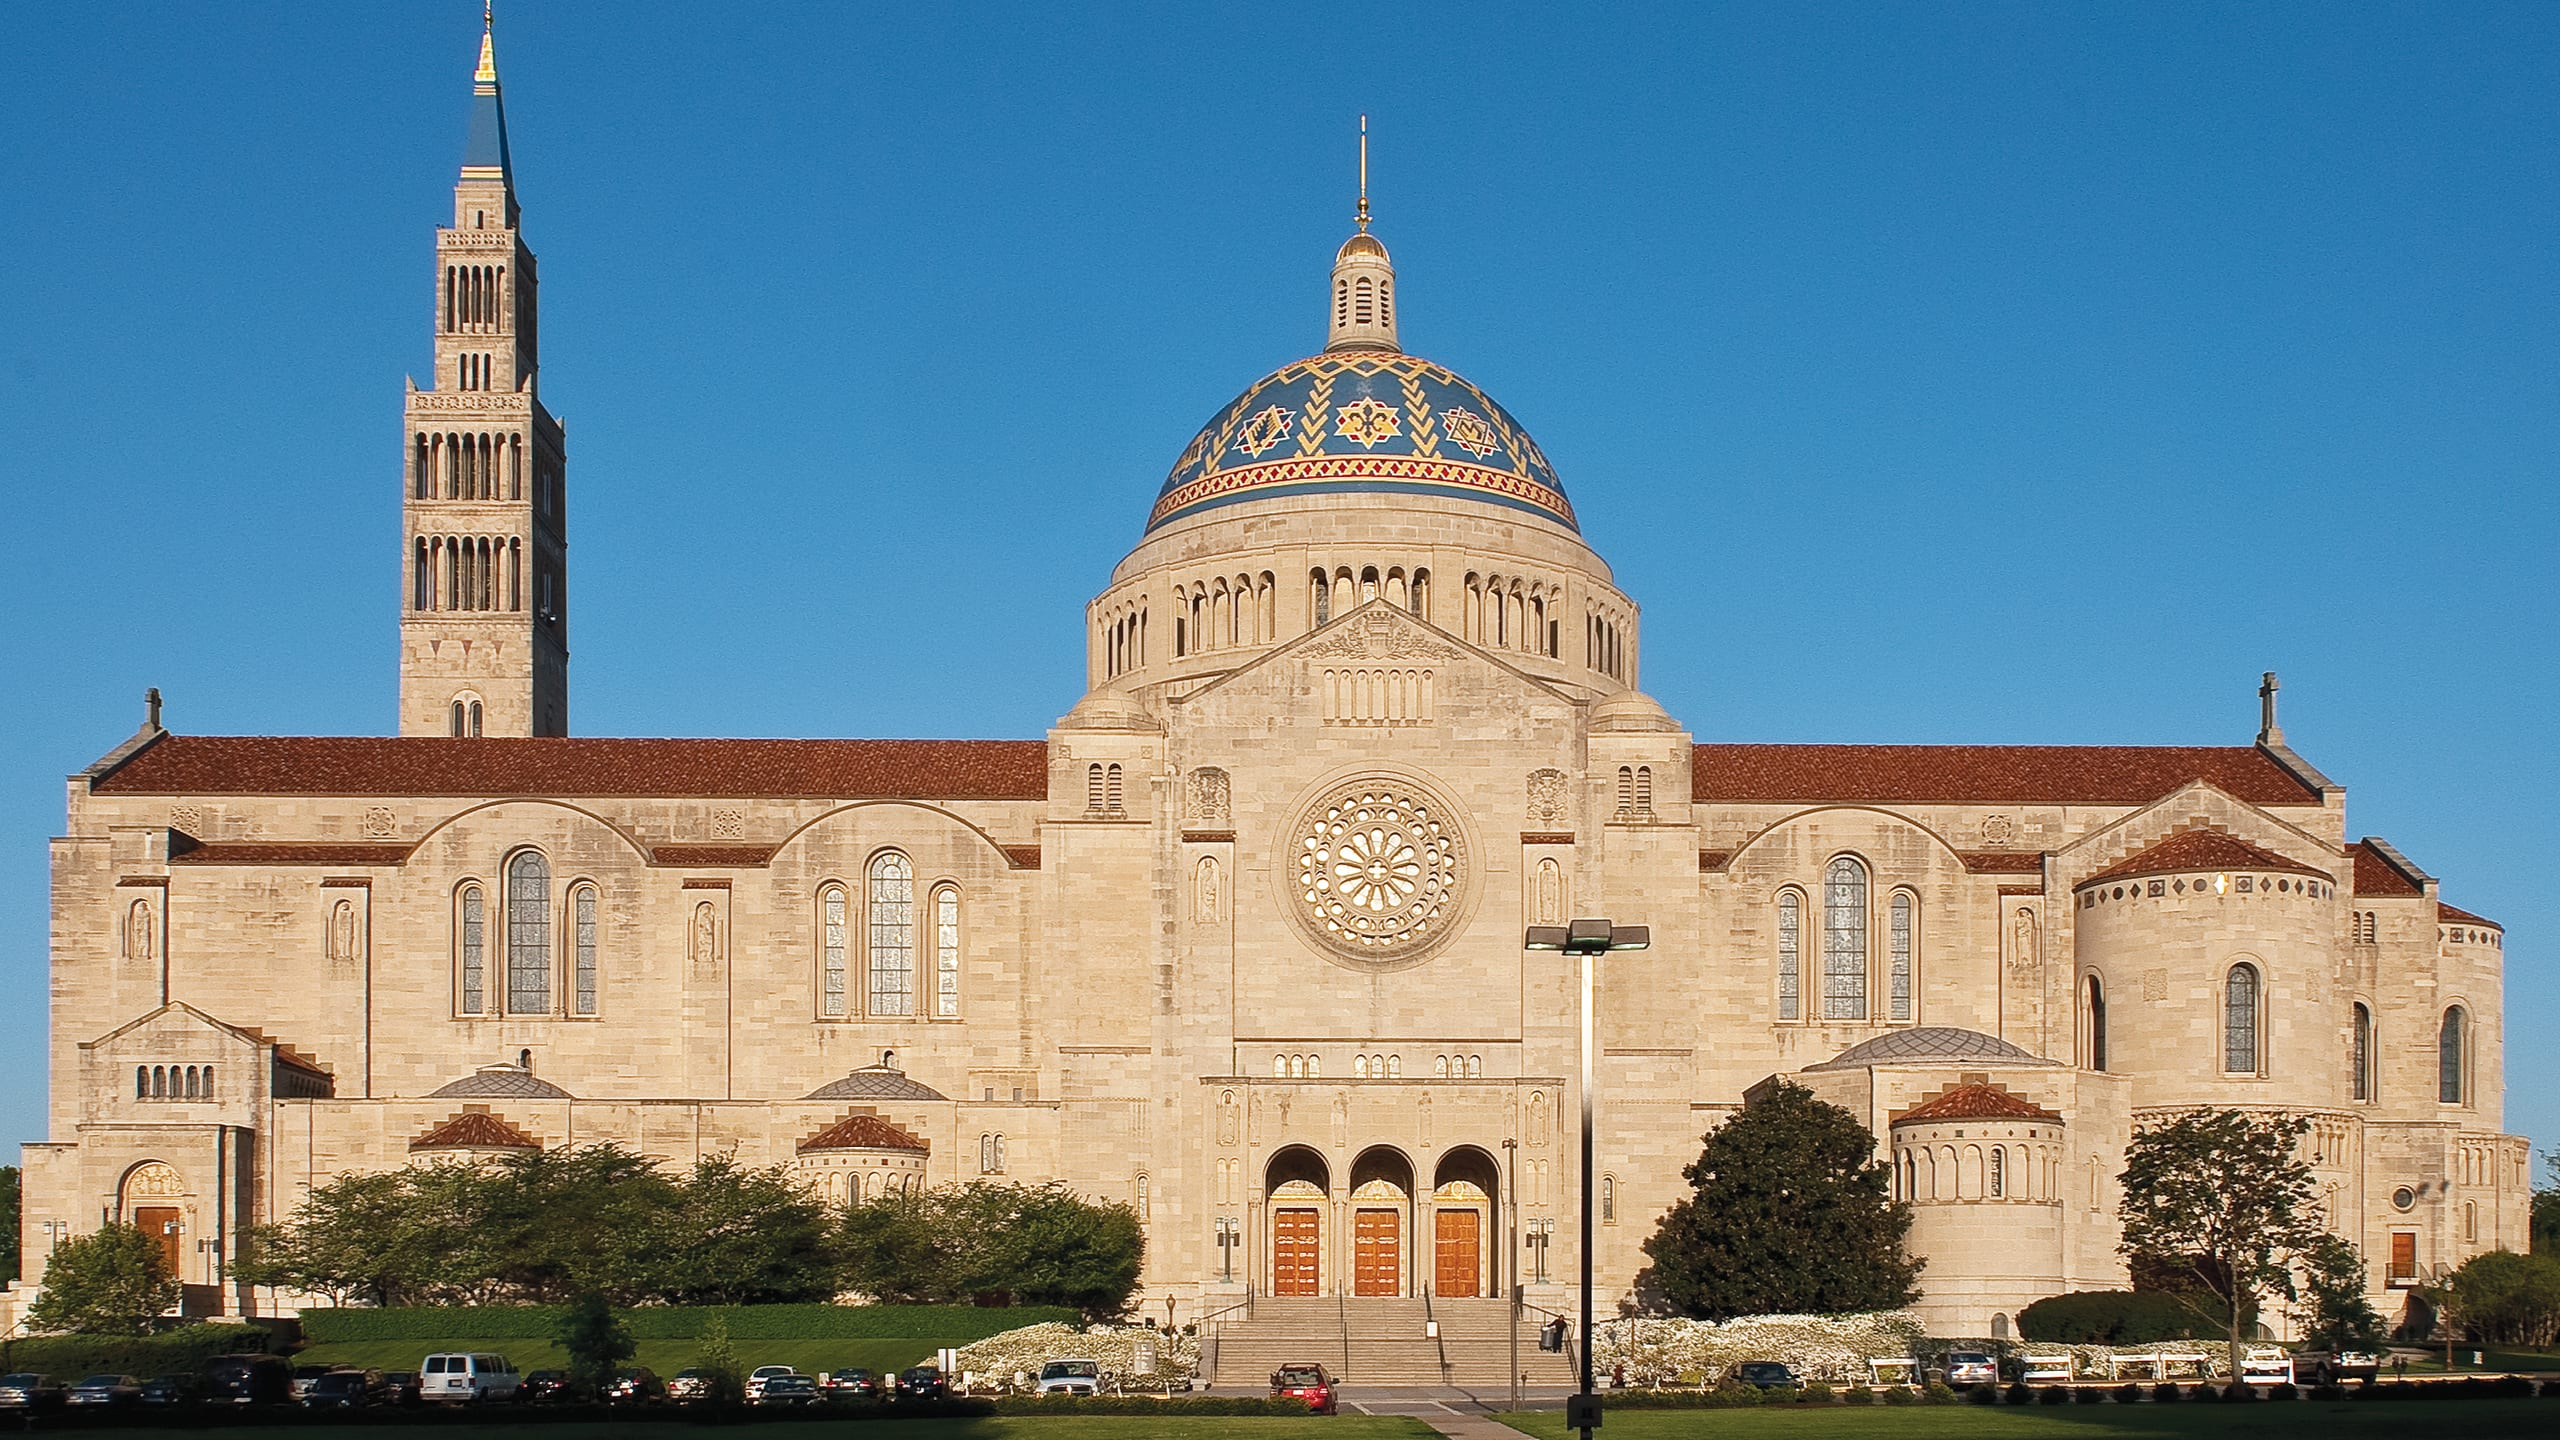 Basilica of the National Shrine of the Immaculate Conception Ludowici Roof Tile